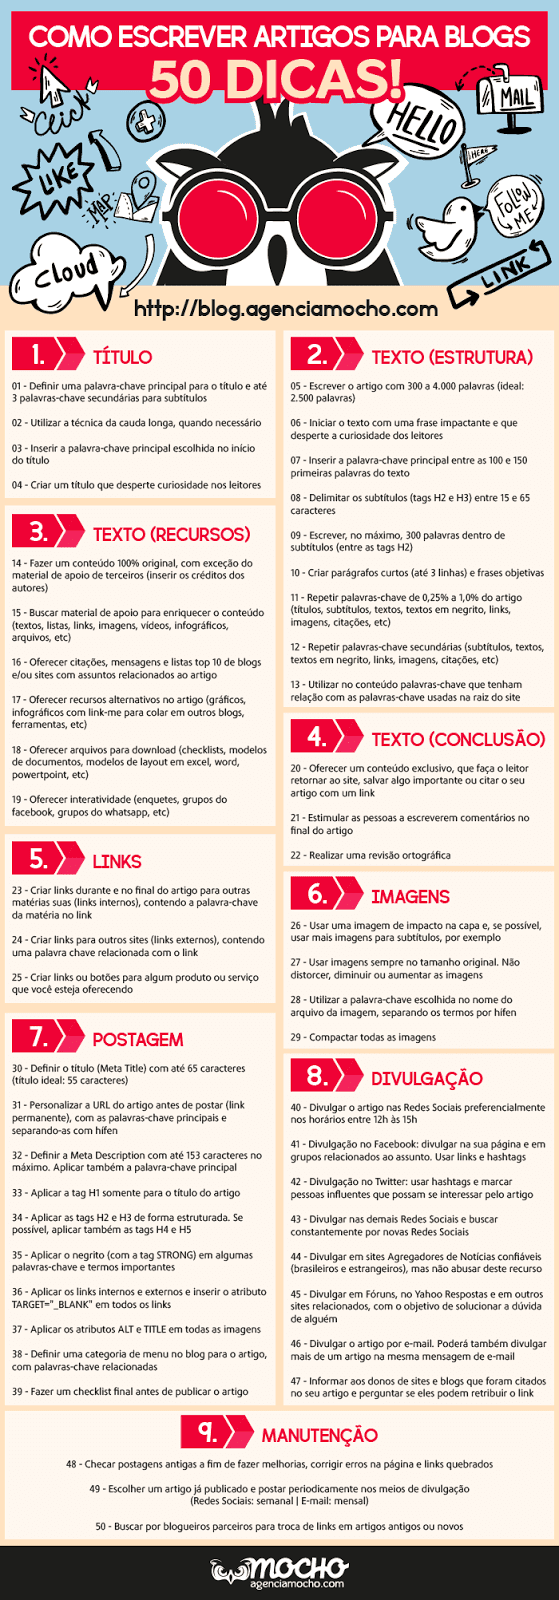 Blog do Mocho - como escrever artigos para blogs - infografico